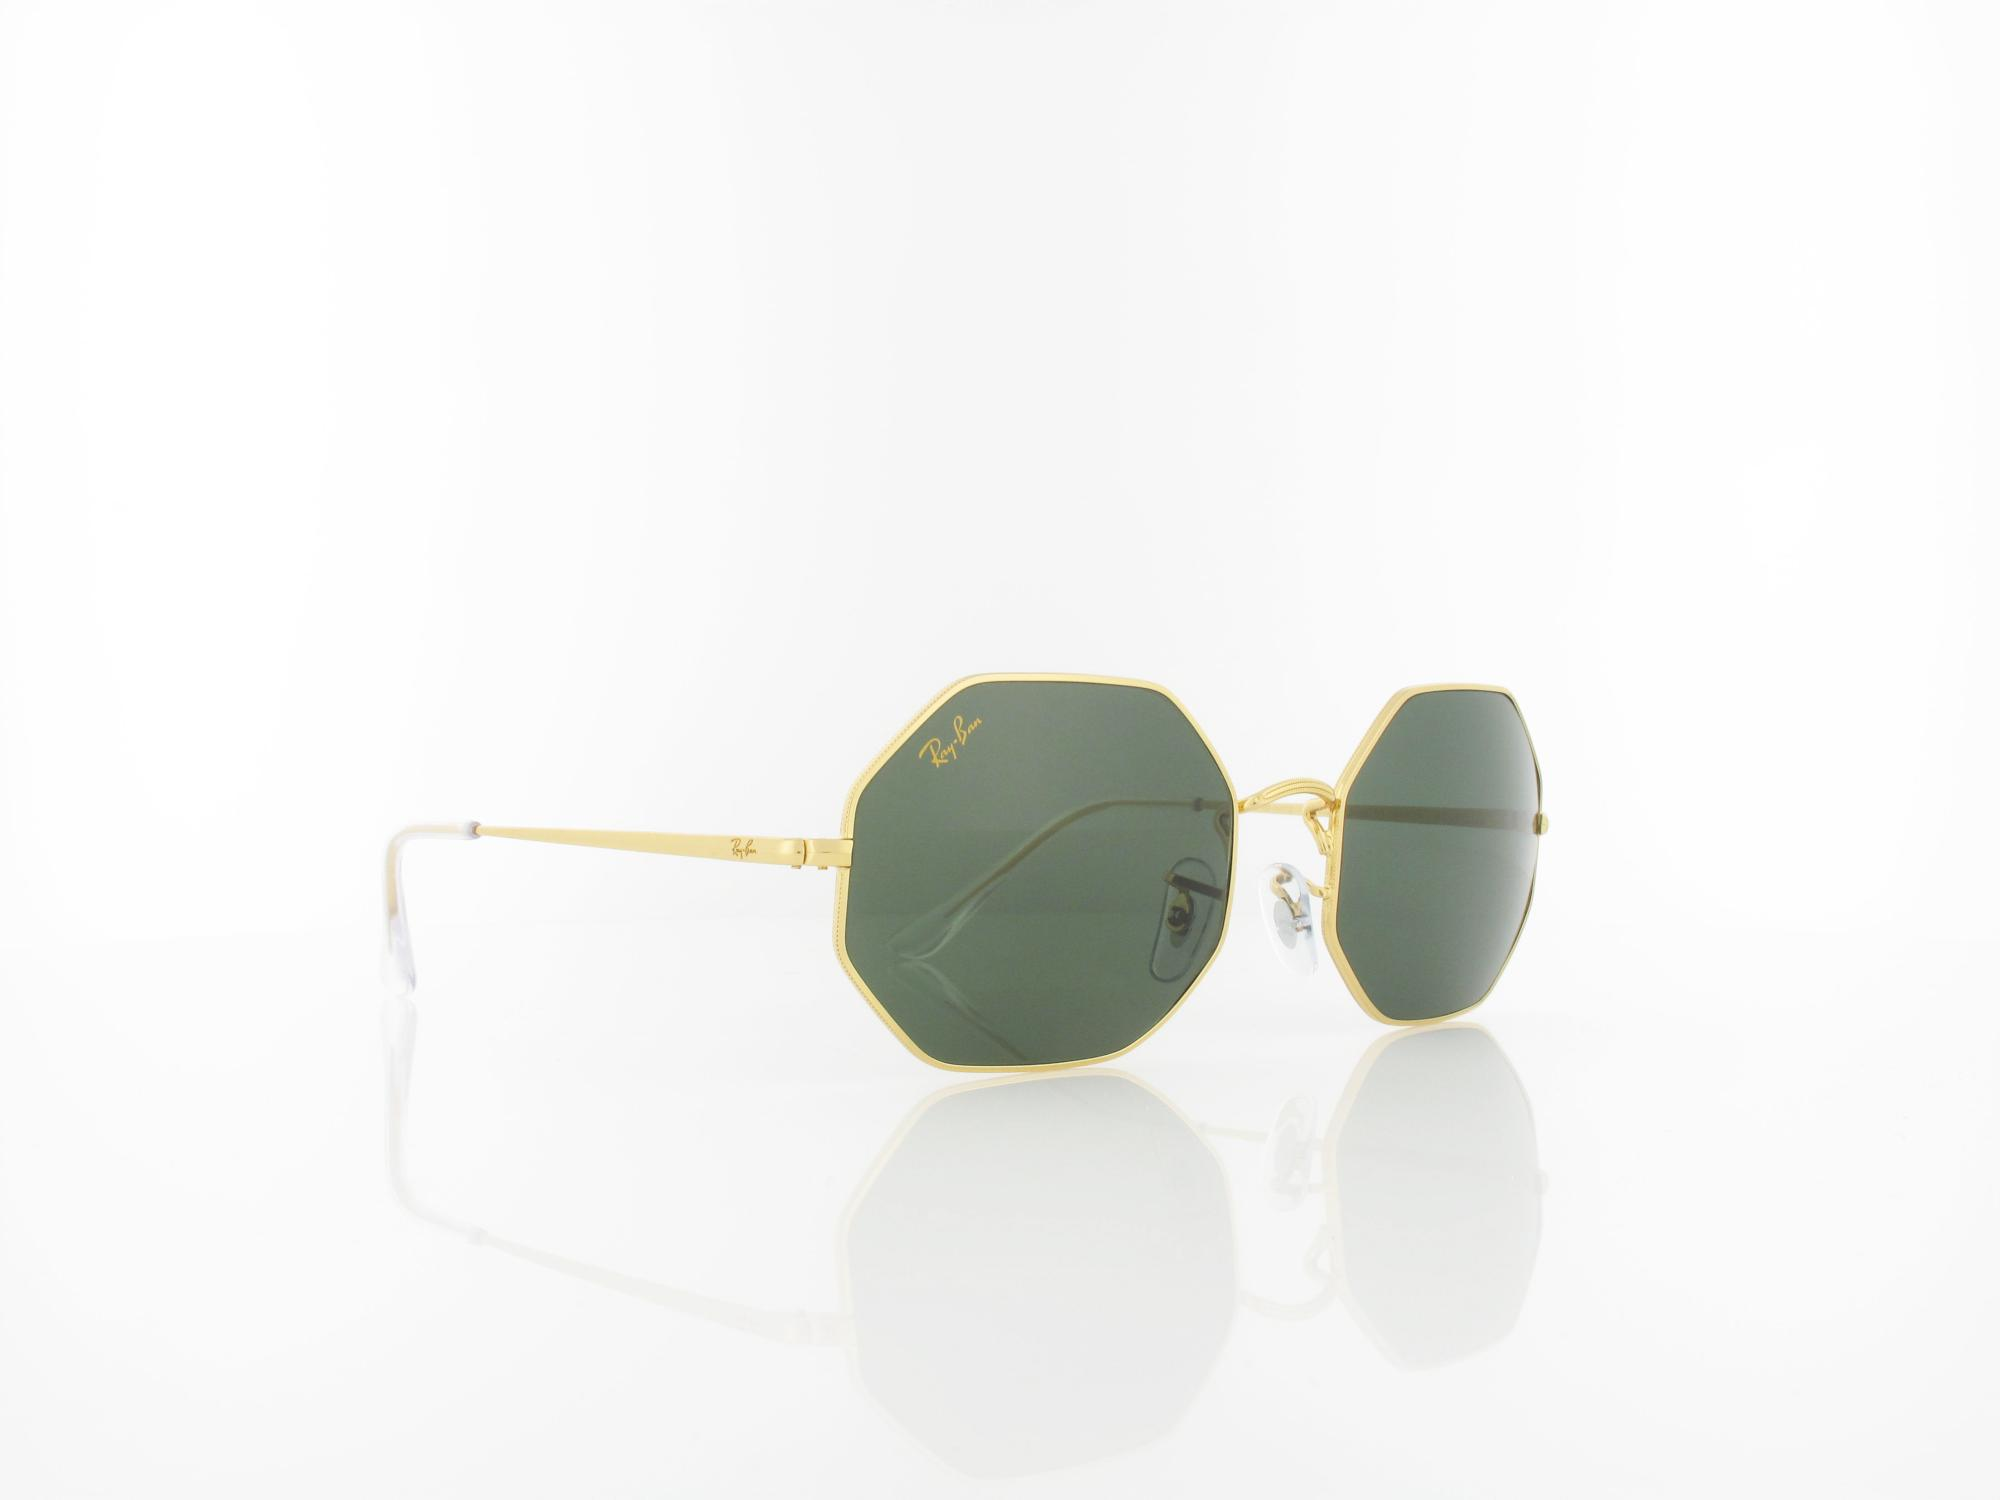 Ray Ban | RB1972 919631 54 | legend gold / green